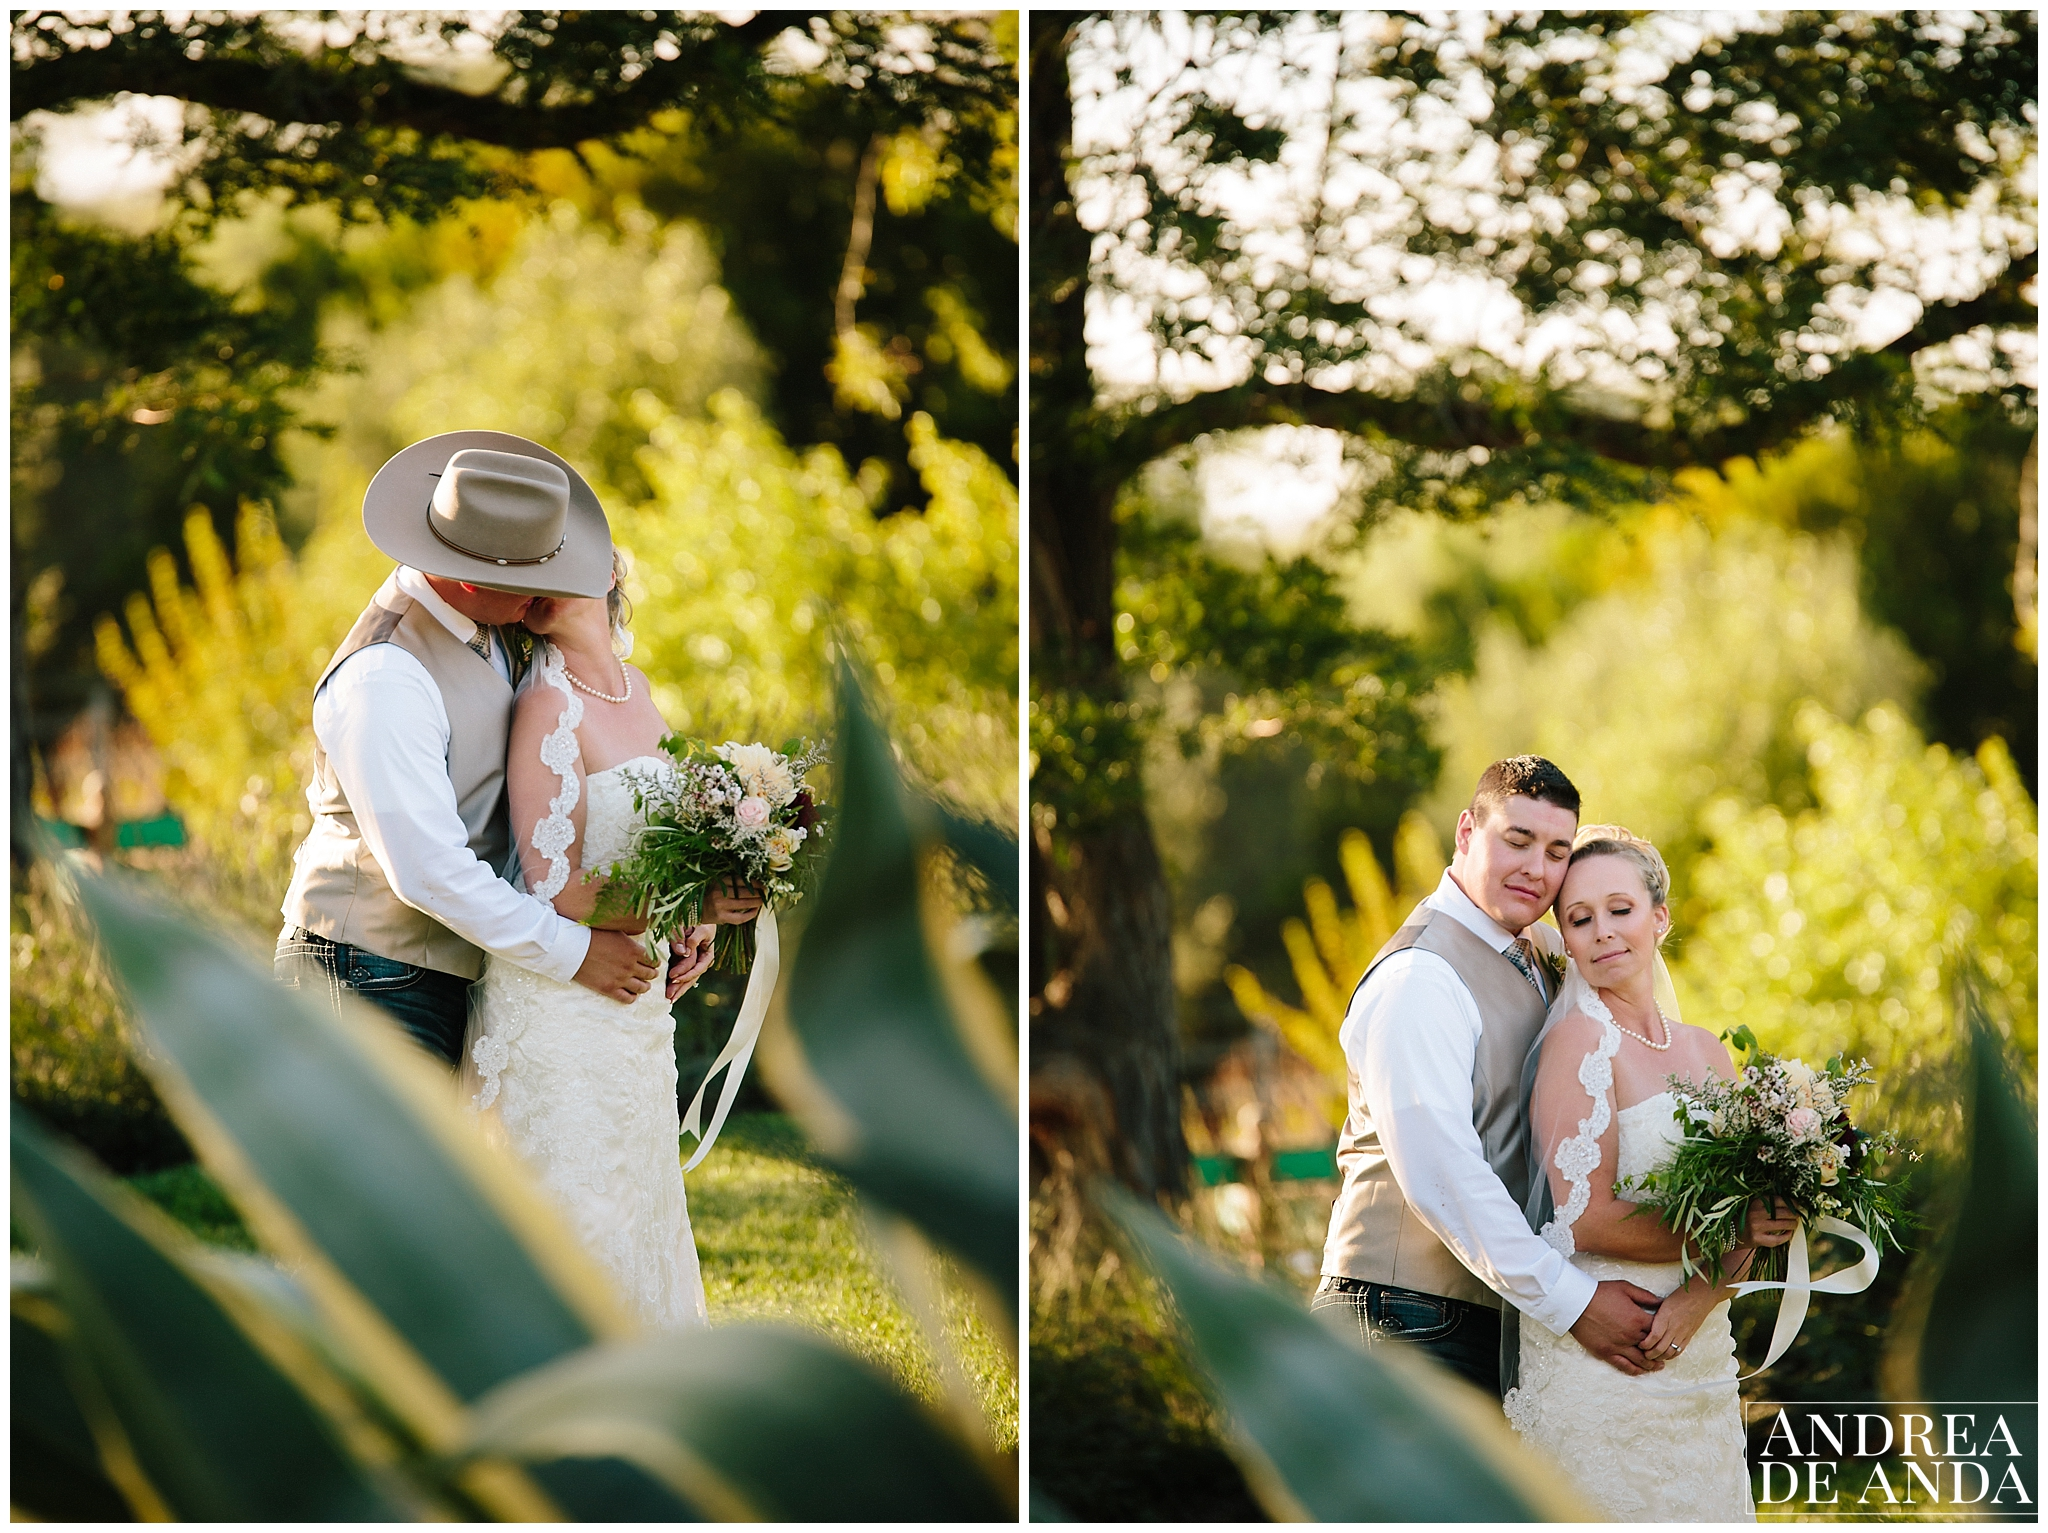 Santa Ynez Valley back yard wedding_Andrea de Anda Photography__0057.jpg